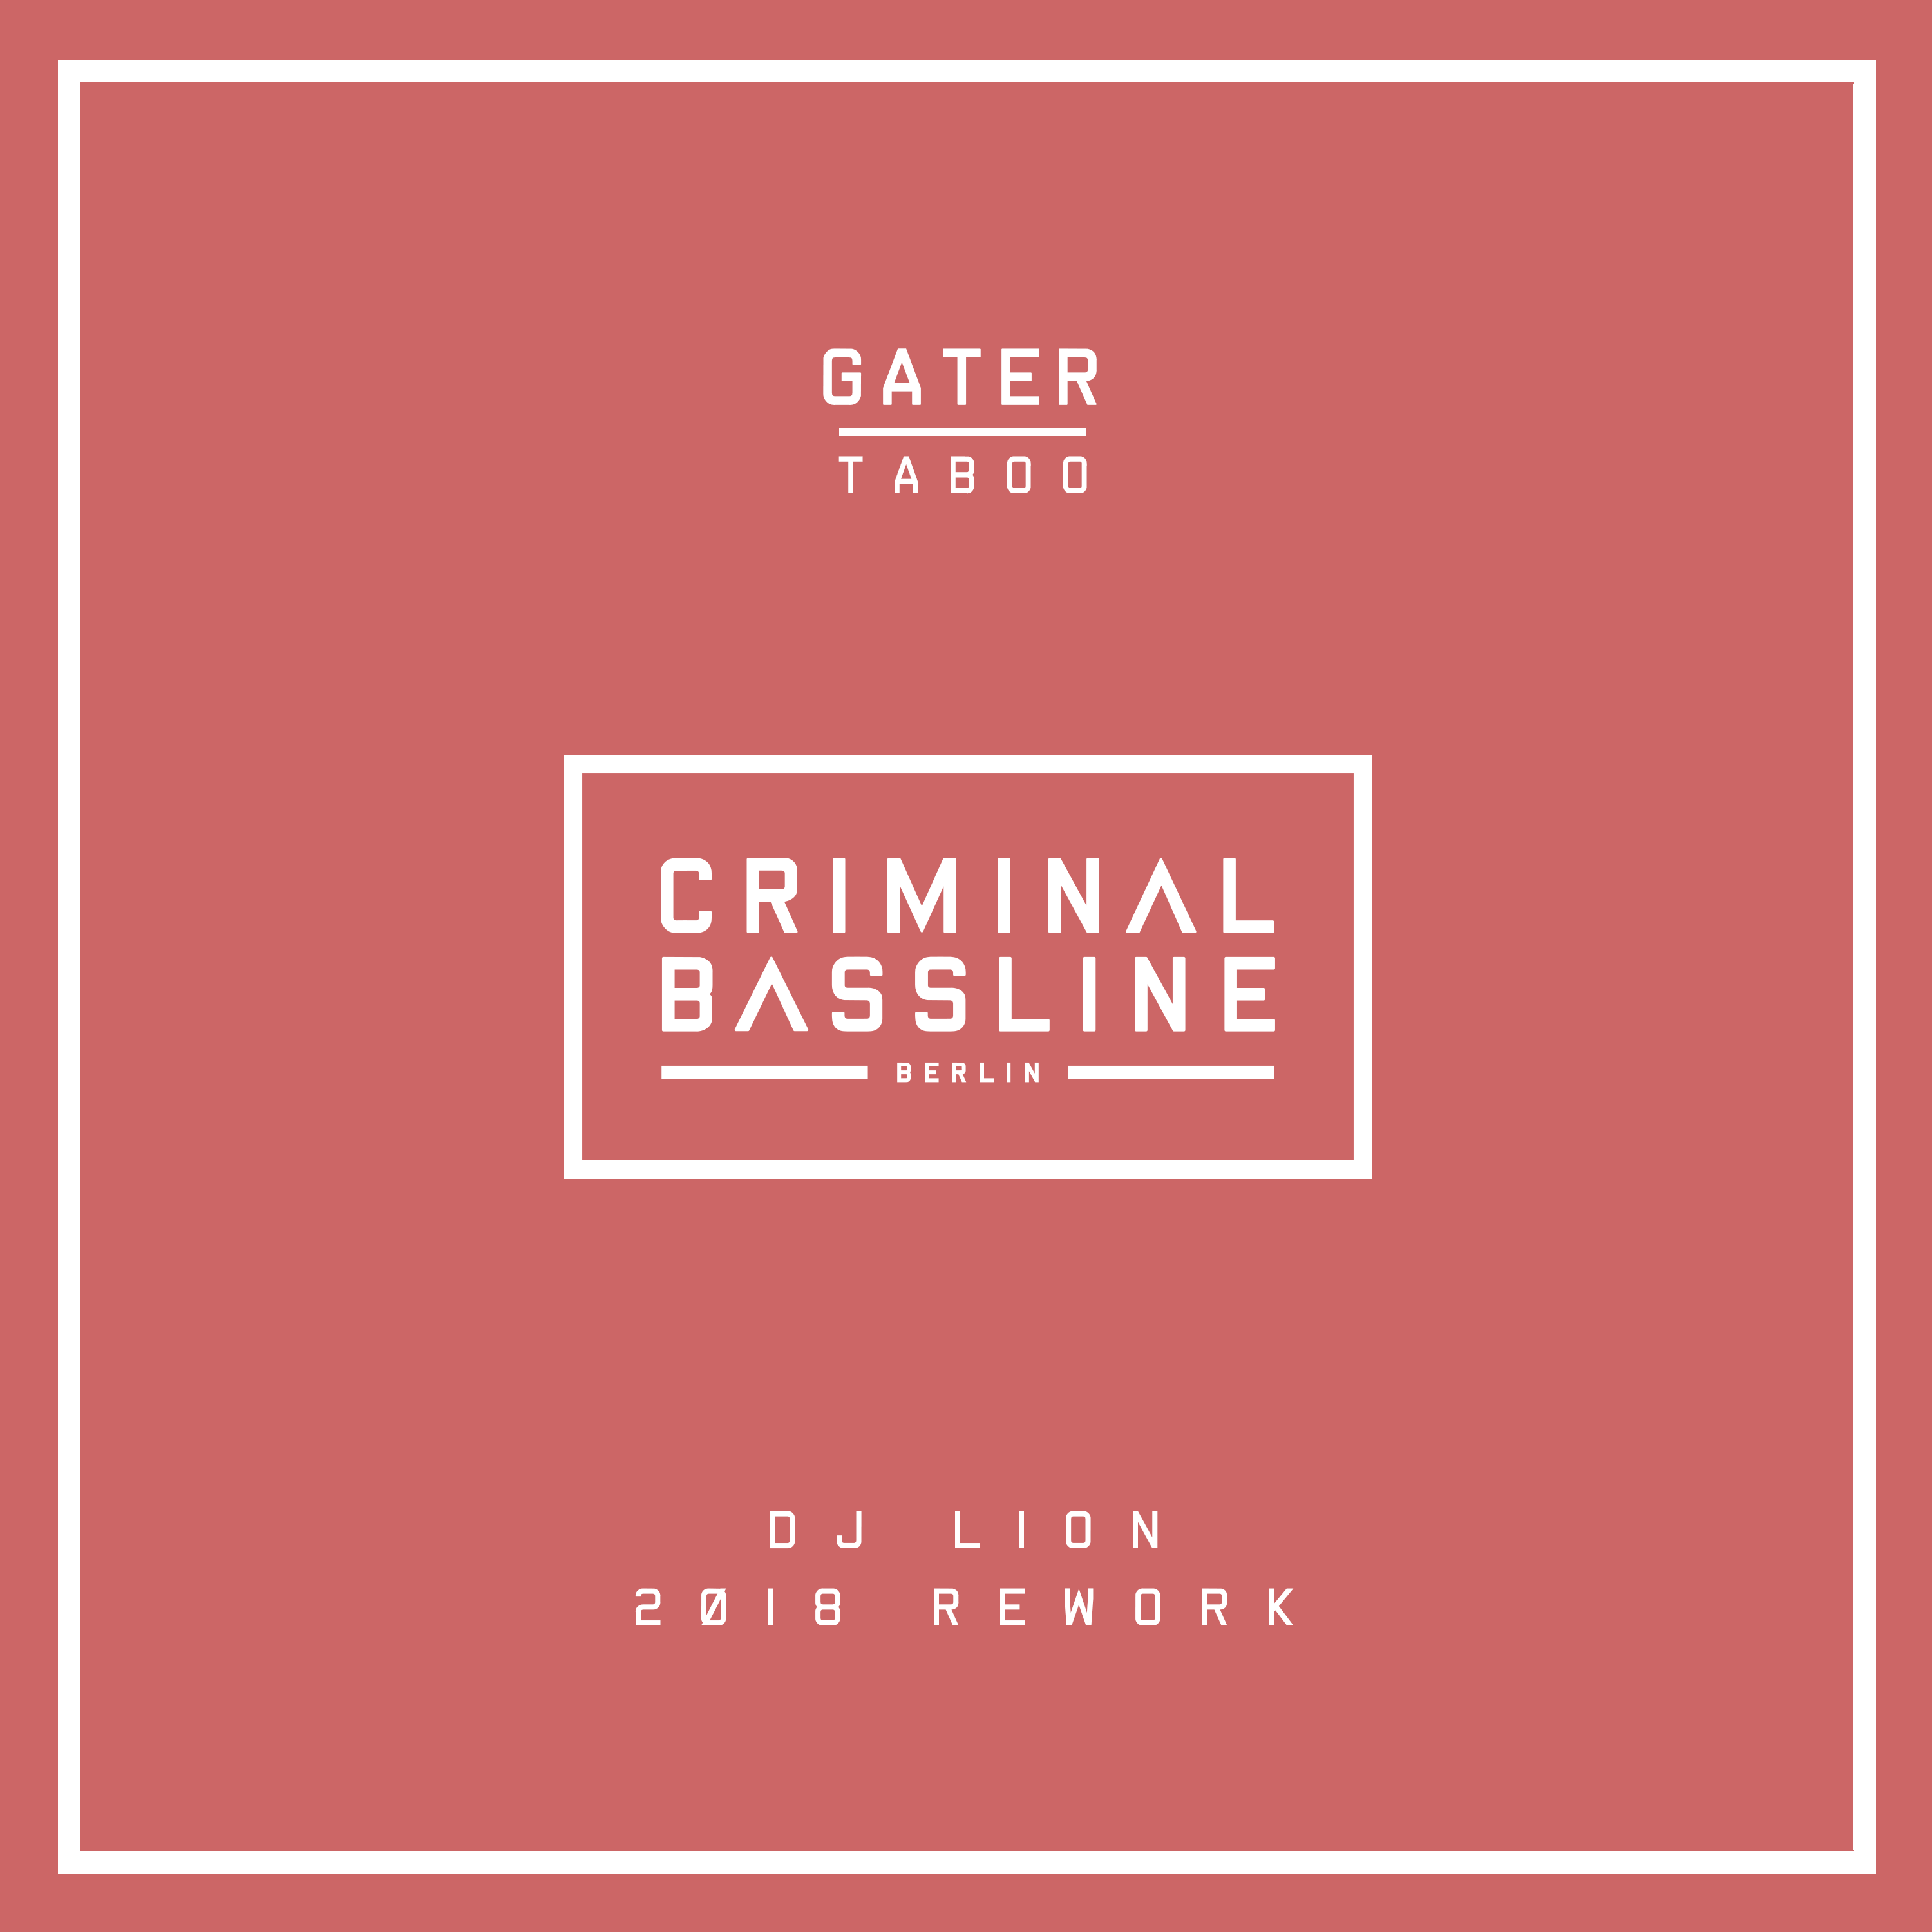 DOWNLOAD: GATER – TABOO (DJ LION 2018 Rework)